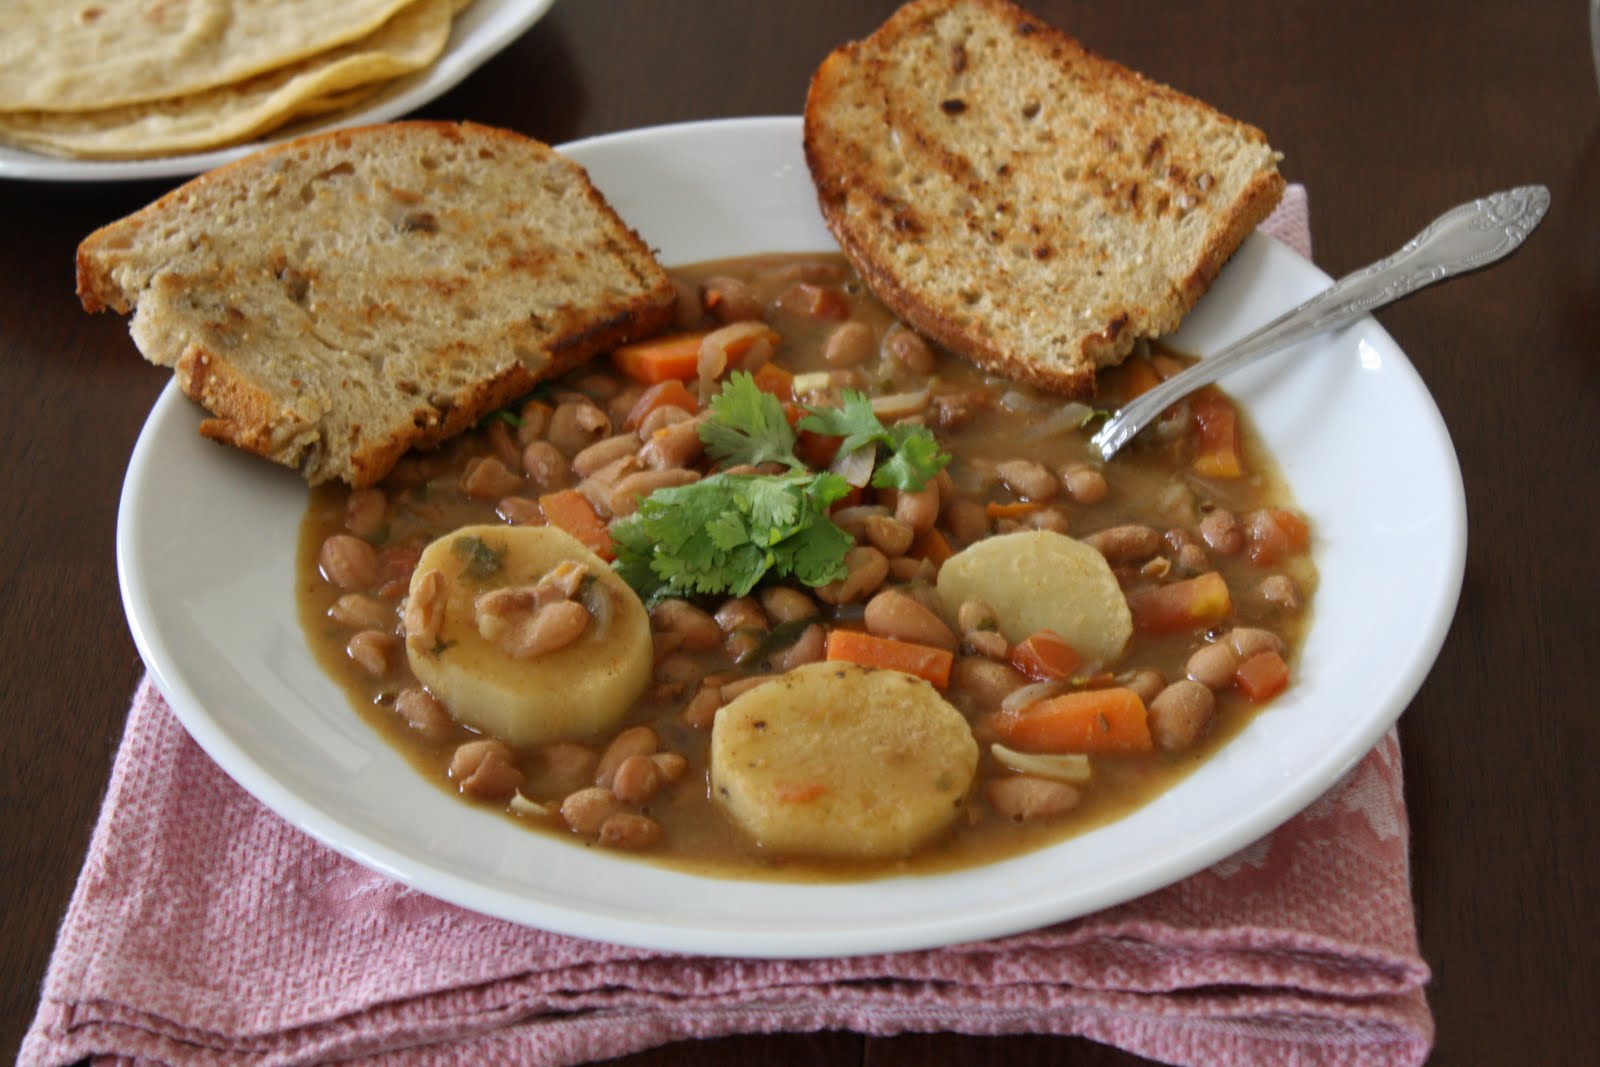 Versatile Vegetarian Kitchen: Cranberry Bean Soup/Curry?